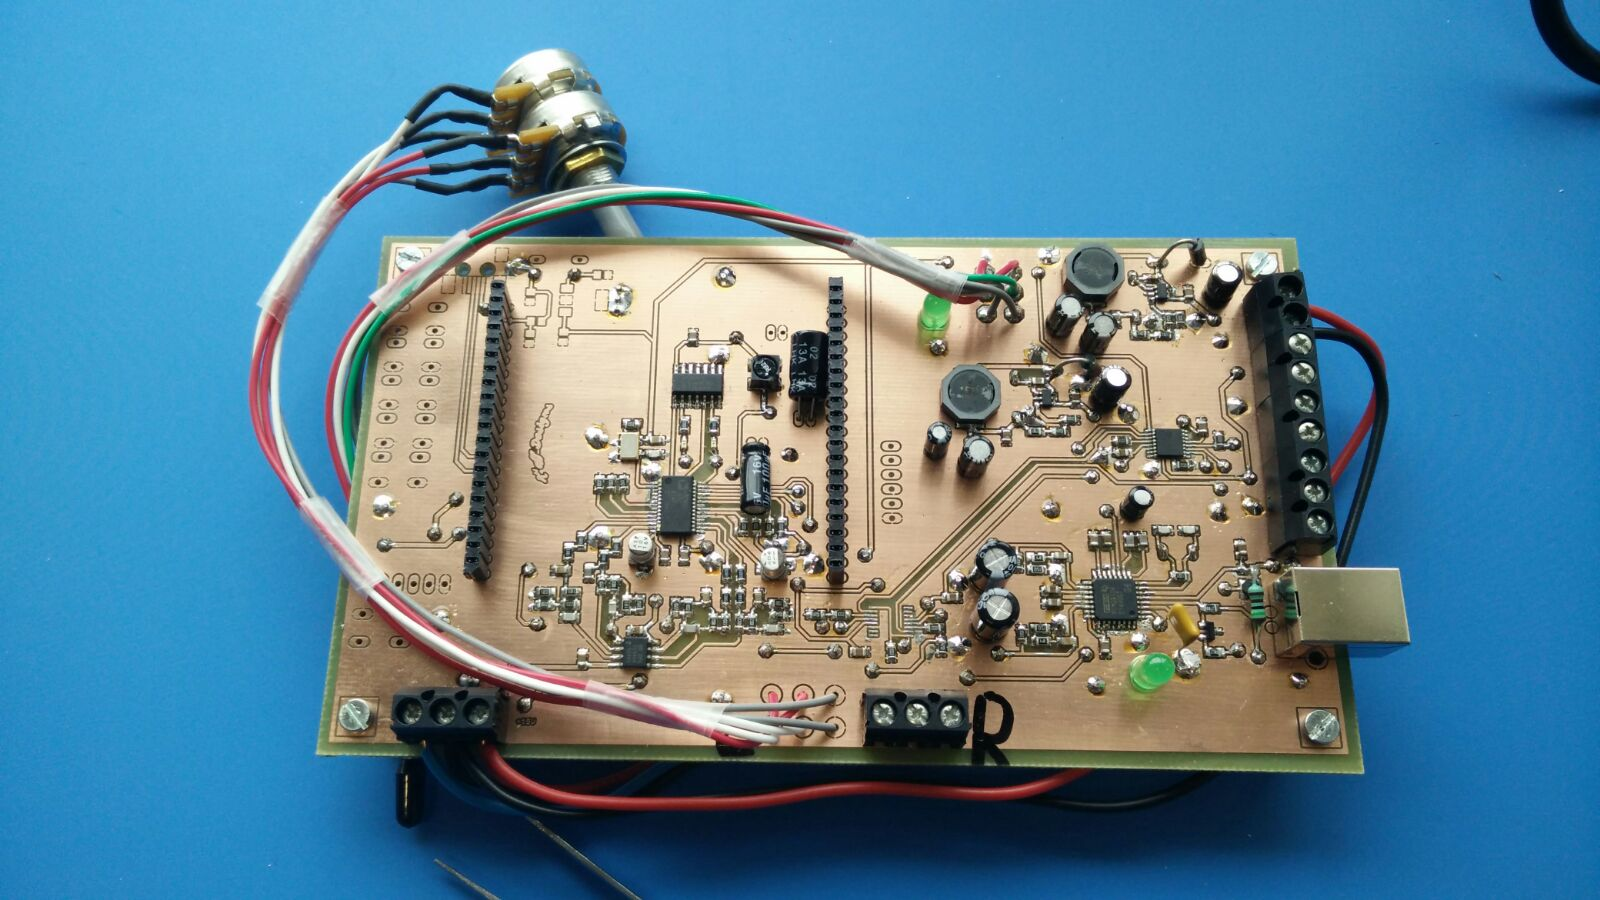 Ad1852 33v I2c Qa Audio Engineerzone Better Way To Achieve Level Convertion Is Use A Shifter Or For The Lever Conversion 5v I Used Following Type Of Logic